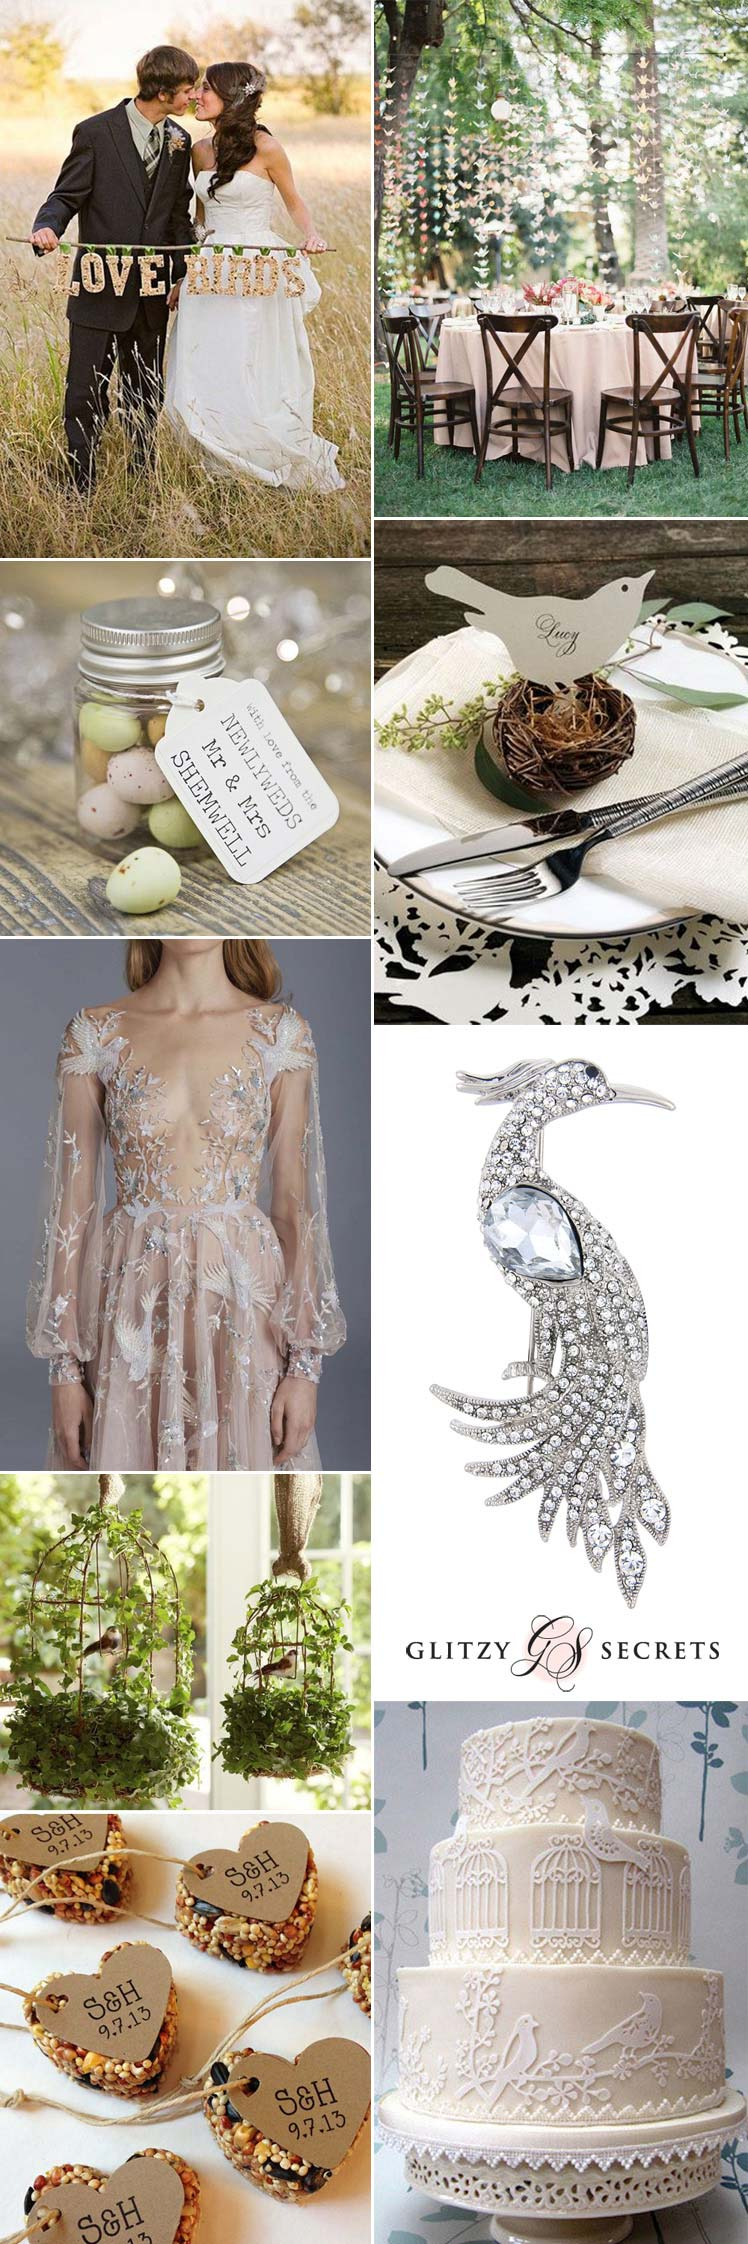 birds can create a fabulous wedding theme